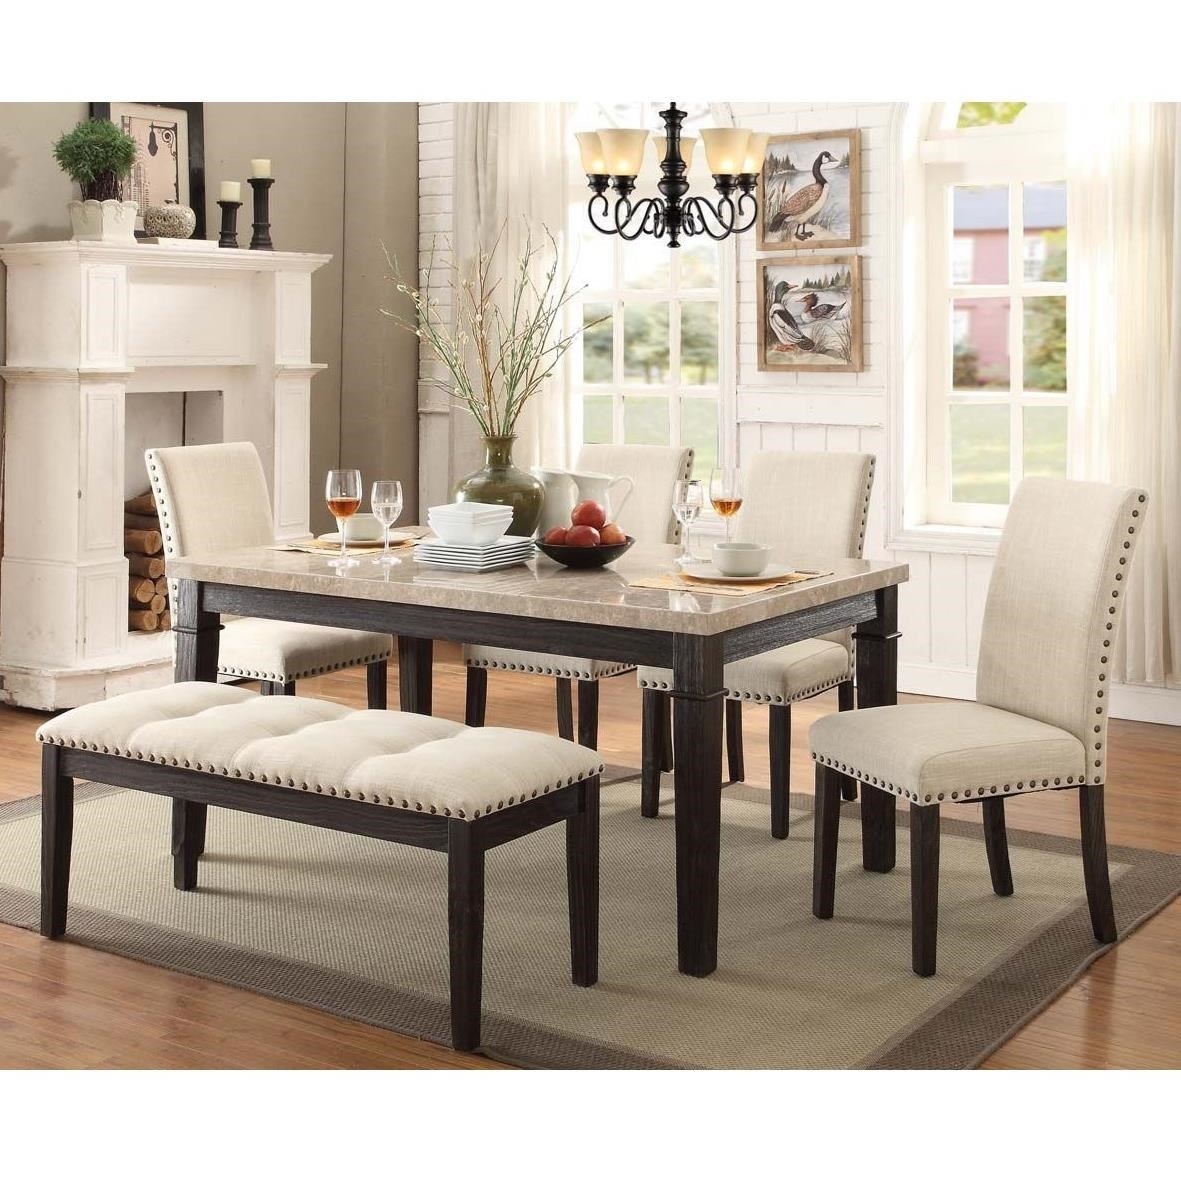 Dining Room Chair Sets Greystone Table And Chair Set With Upholstered Bench By Elements International At Household Furniture